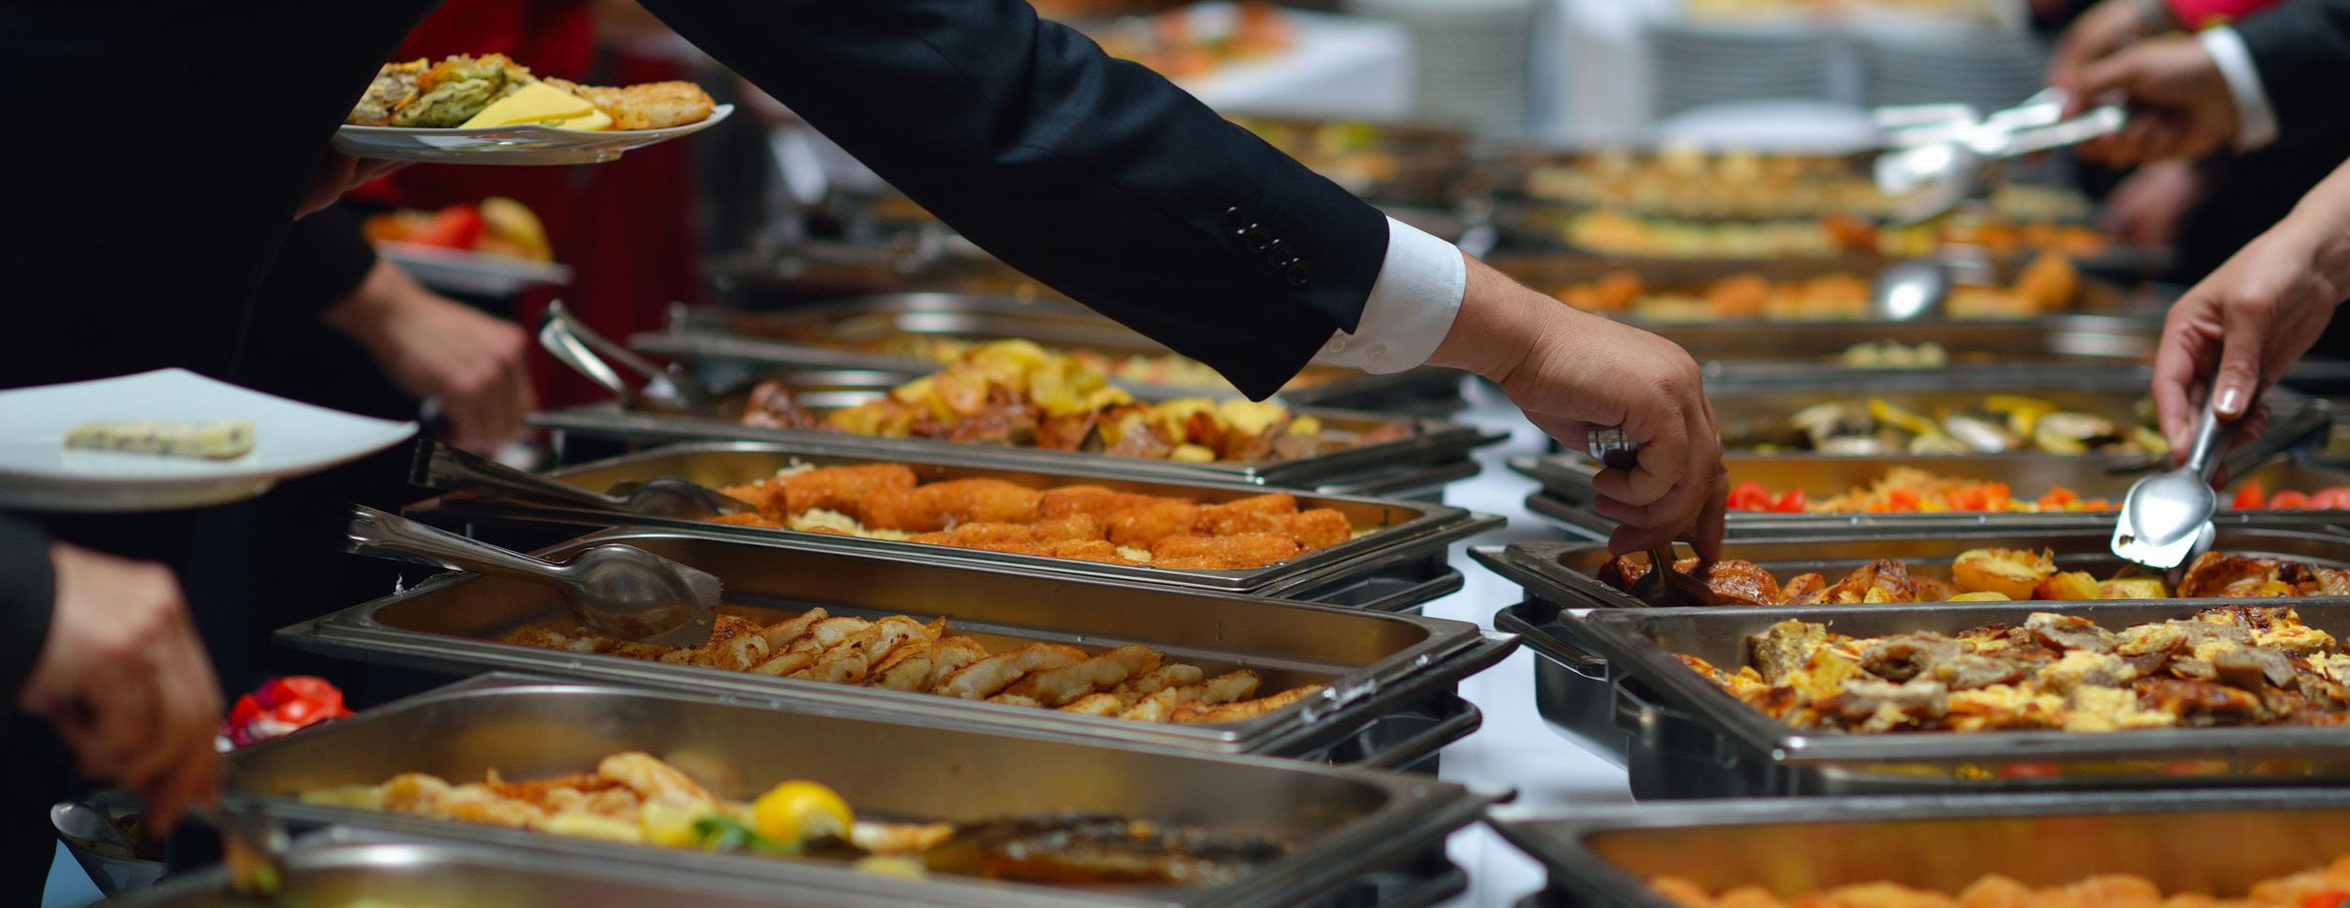 cgh-content-bkg-outside-catering-2